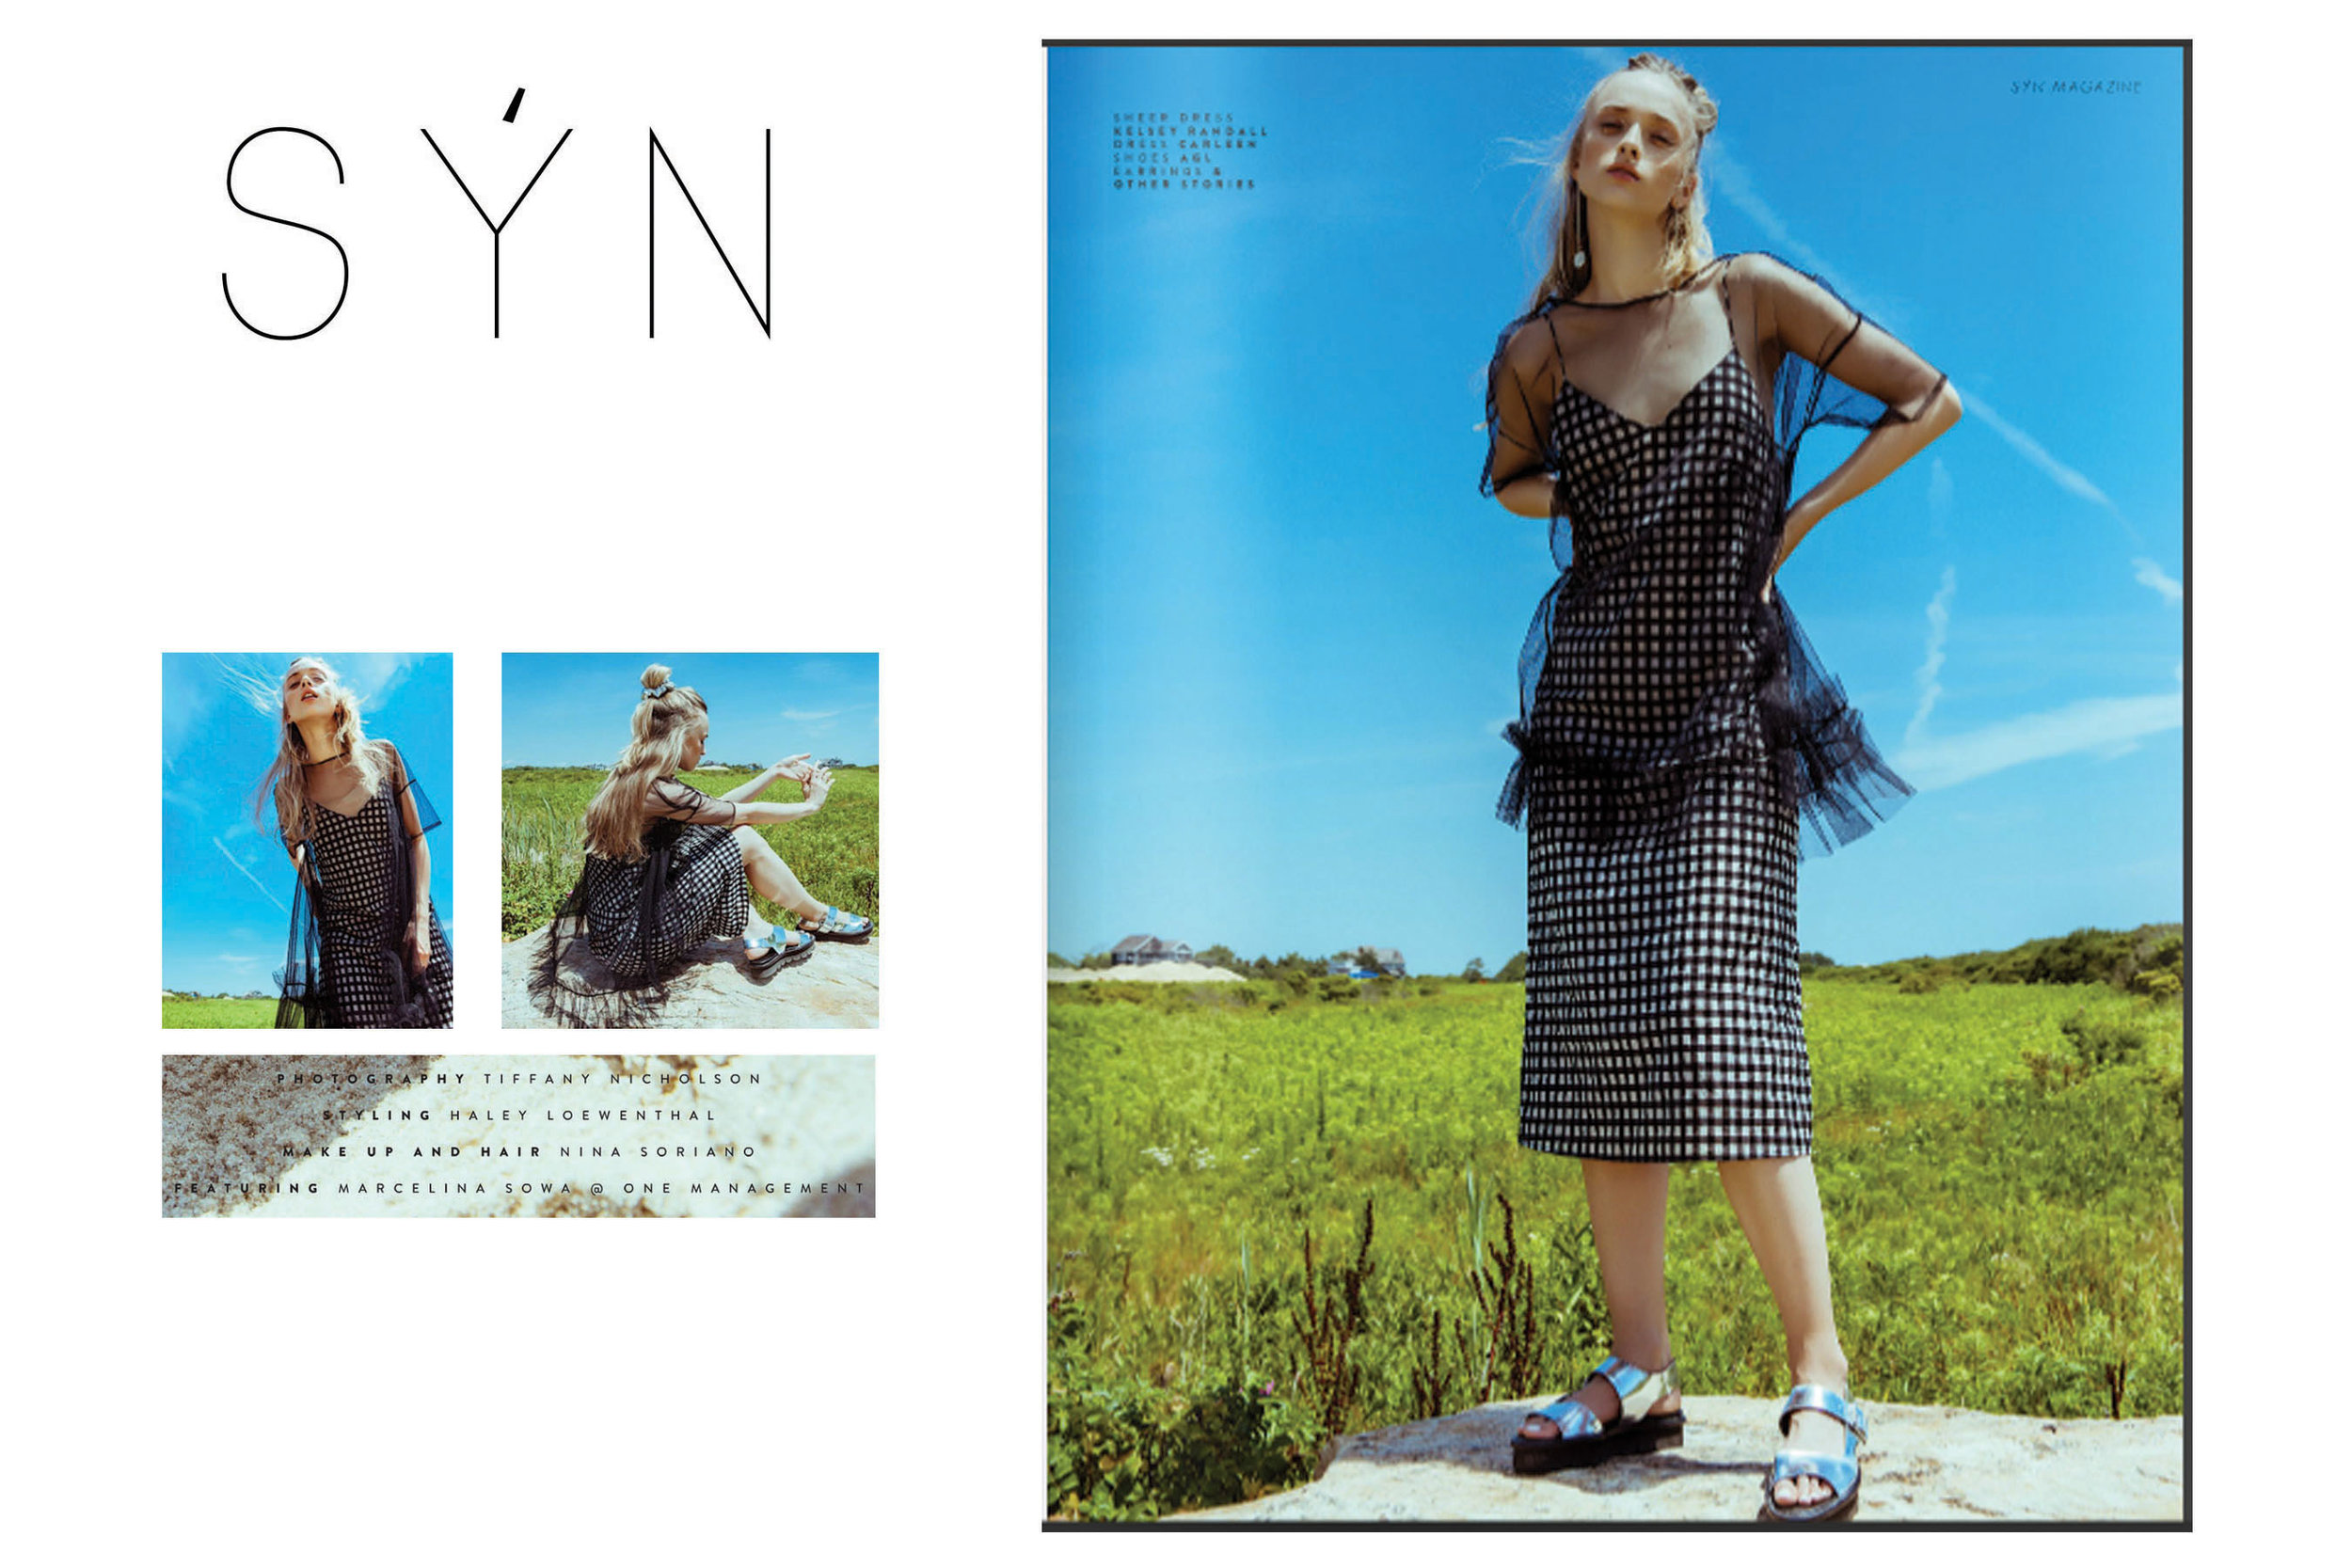 syn magazine fashion editorail feature beach grass nature rock blue skies bright sunny lush spring summer kelsey randall black tulle sheer ruffle babydoll oversized short sleeve cute see through gingham check checkered v neck shift bias cut below knee tube straight tight fitted metallic platform sandal flatform silver 90's raver goth candy goth delia's  70's style retro daywear sportswear seventies hipster cool stylist made-to-measure womenswear bridal custom bespoke handcrafted sustainable ethical local production manufacturing made in new york city nyc brooklyn bushwick emerging designer ones to watch new talent rising star best of american fashion young designer styled by haley loewenthal shot by photographer tiffany nicholson model marcelina sowa mar hair makeup mua nina soriano